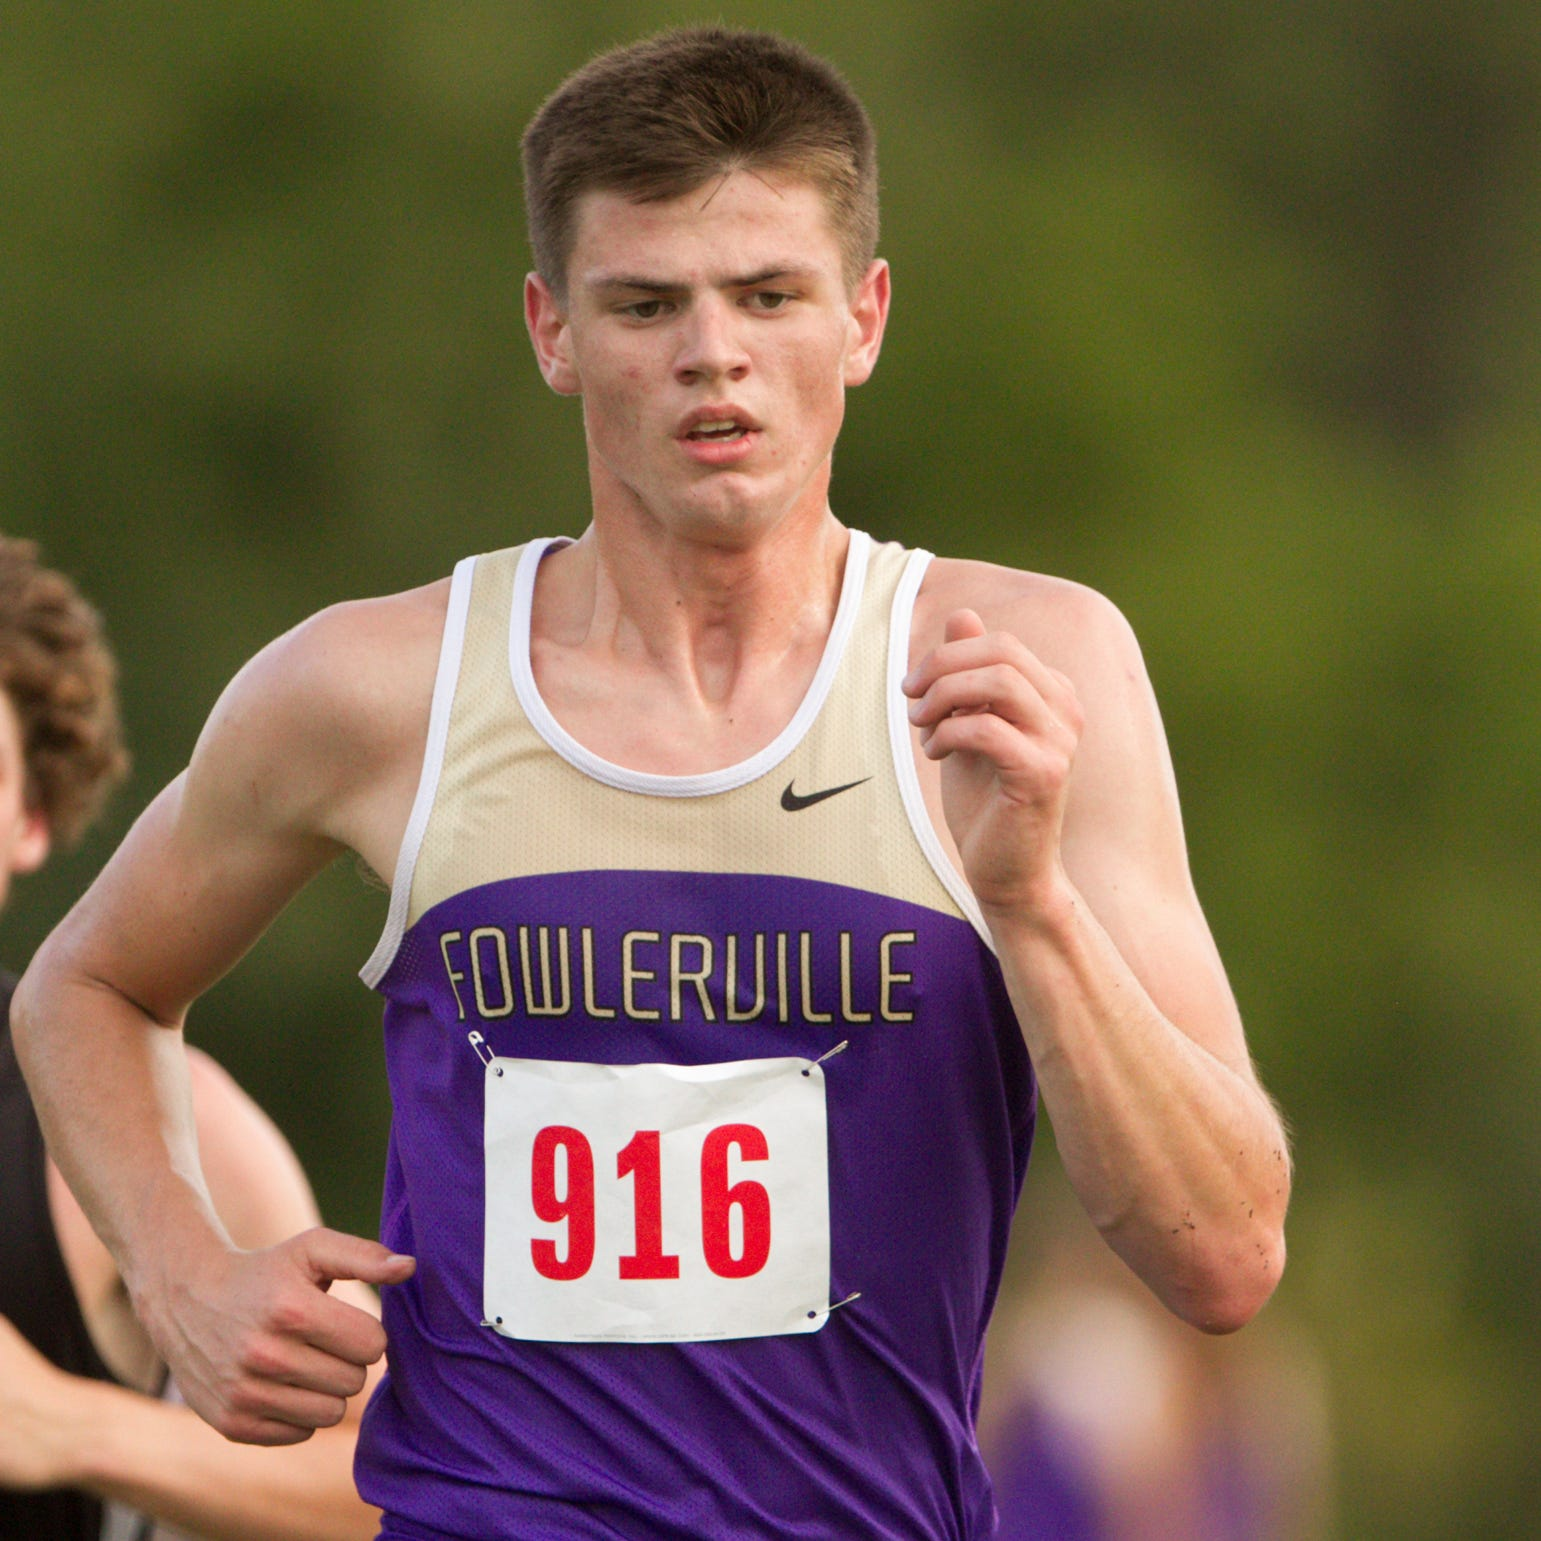 Fowlerville senior succeeds in mountain biking, cross country in fall